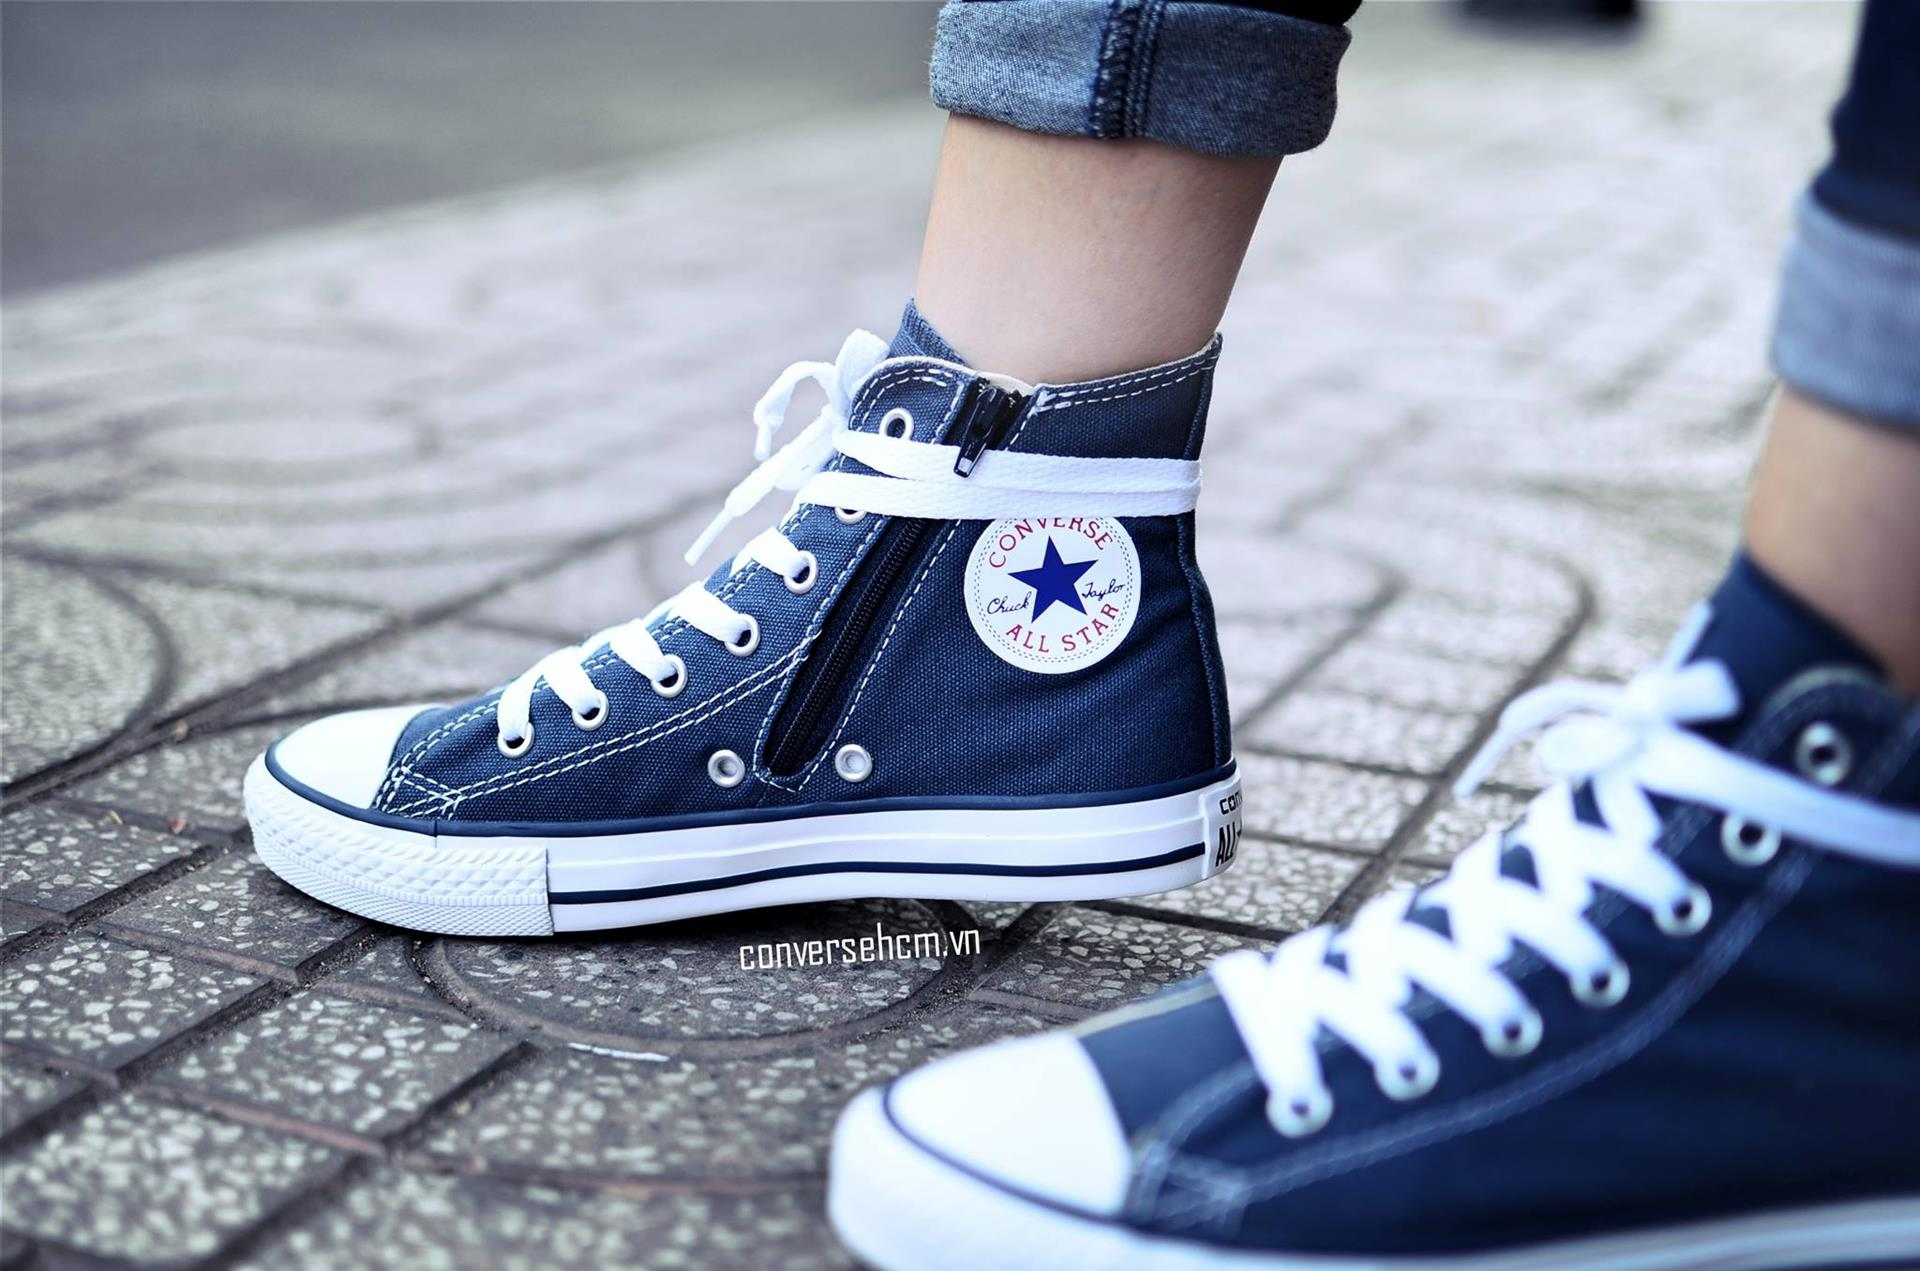 converse essay Converse case study w/ video 1917 dramatic increase in sales after introducing converse canvas all star – one of the worlds first basketball shoes invented.